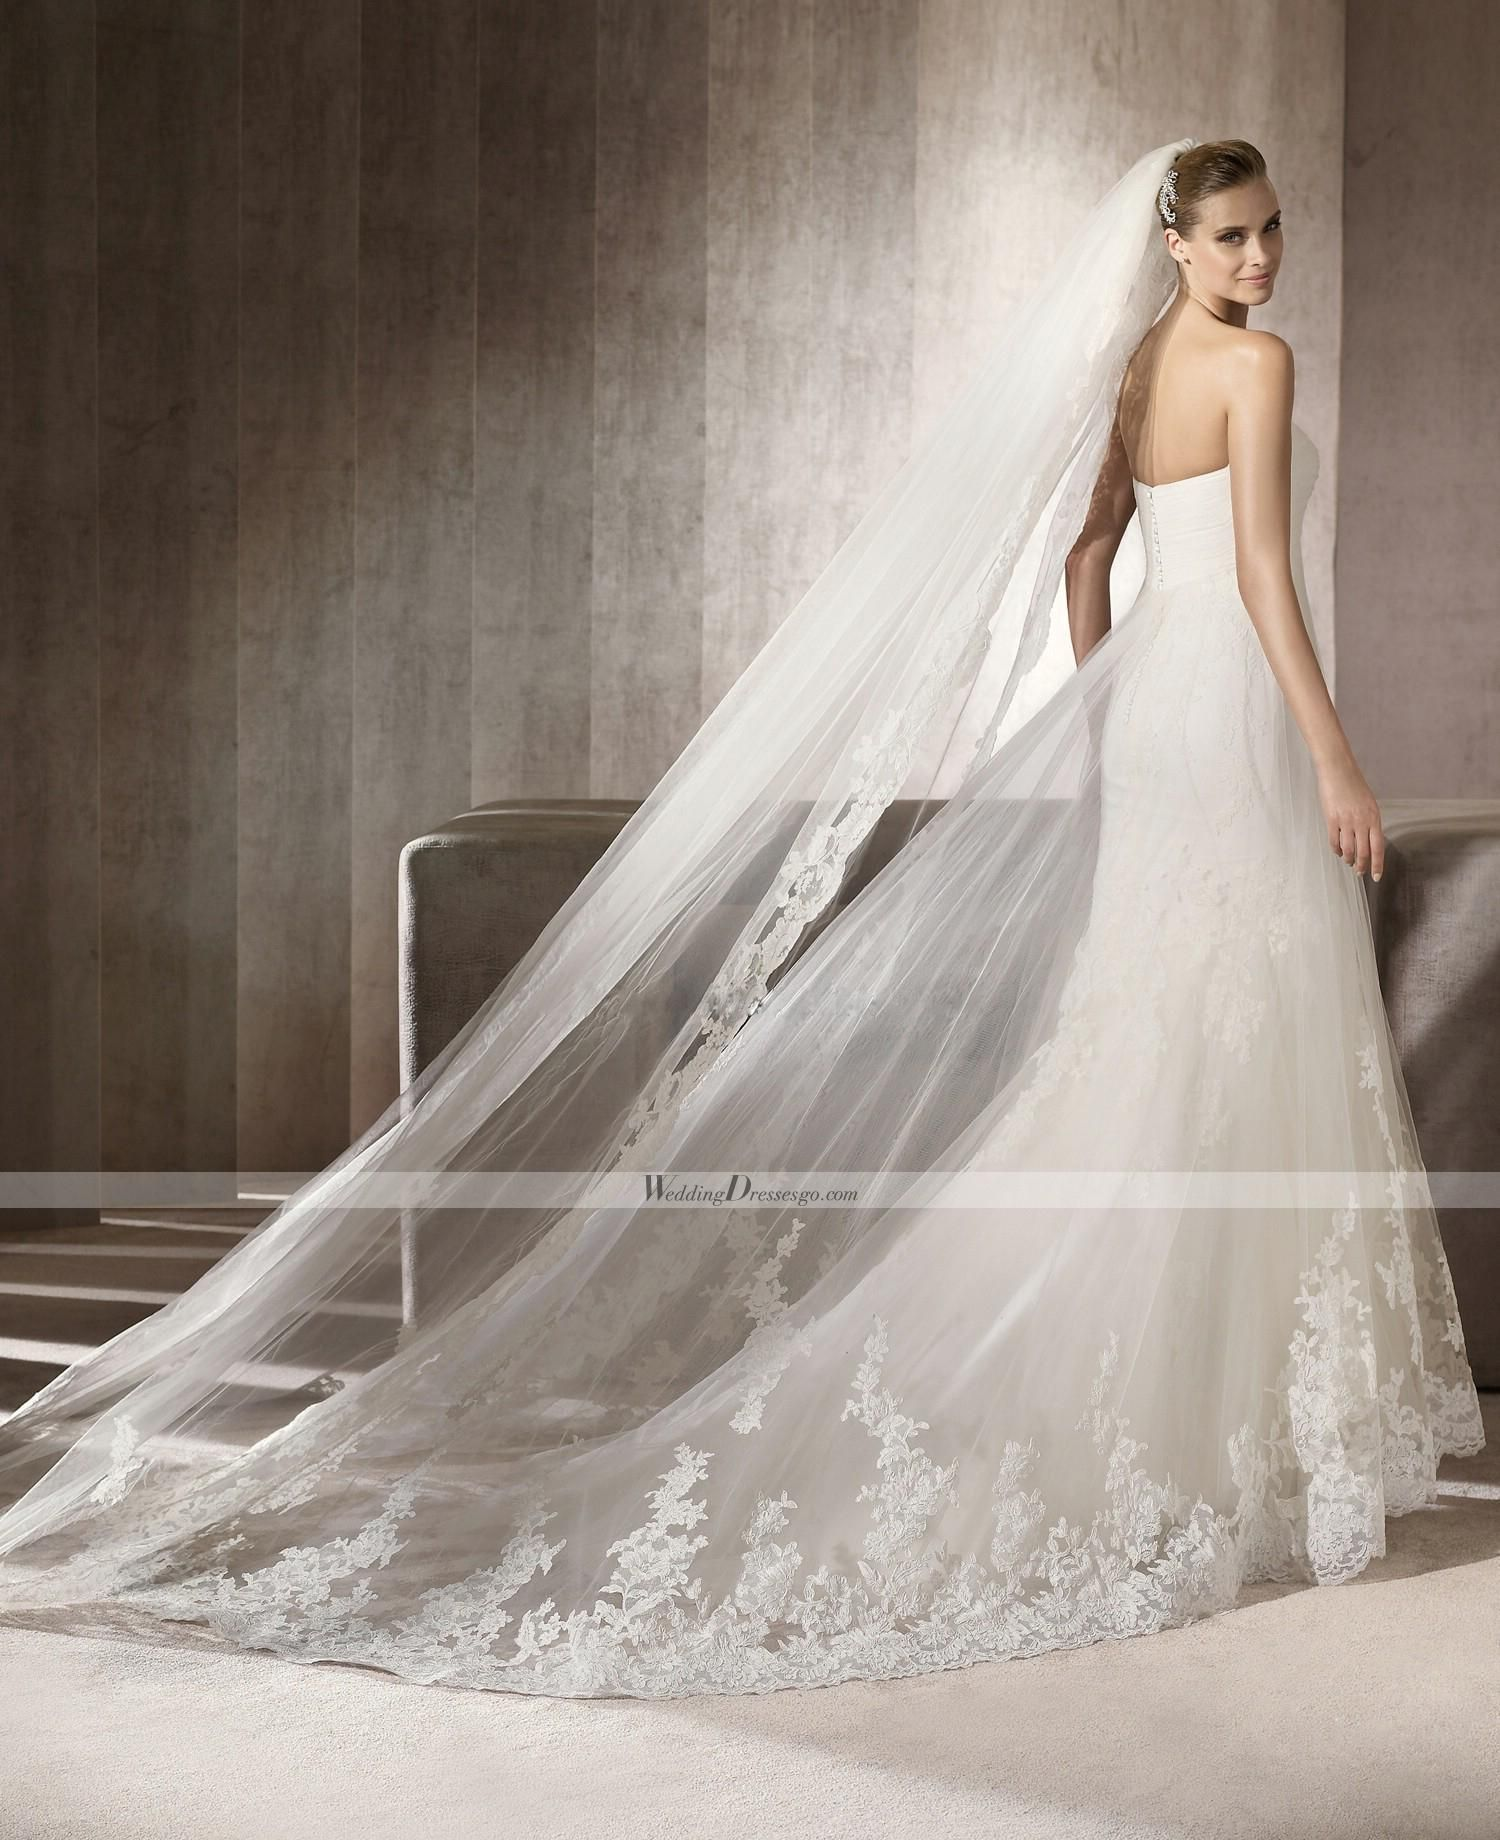 She wants a cathedrallength, lacetrimmed veil